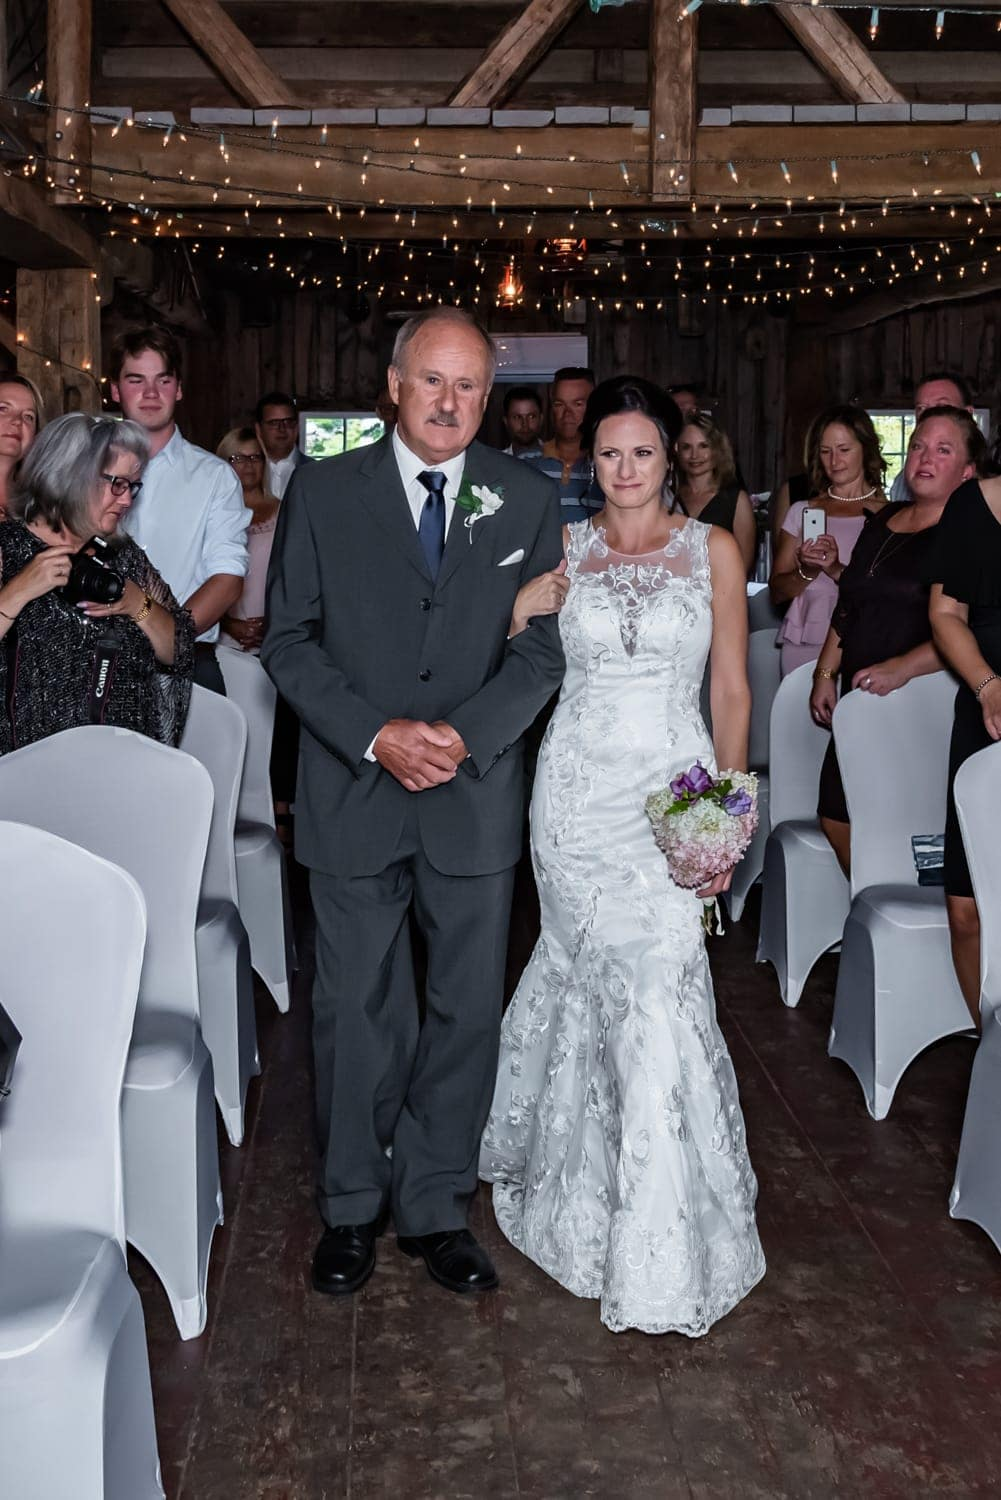 The father of the bride walking her up the aisle at the Old Orchard Inn Heritage Barn.